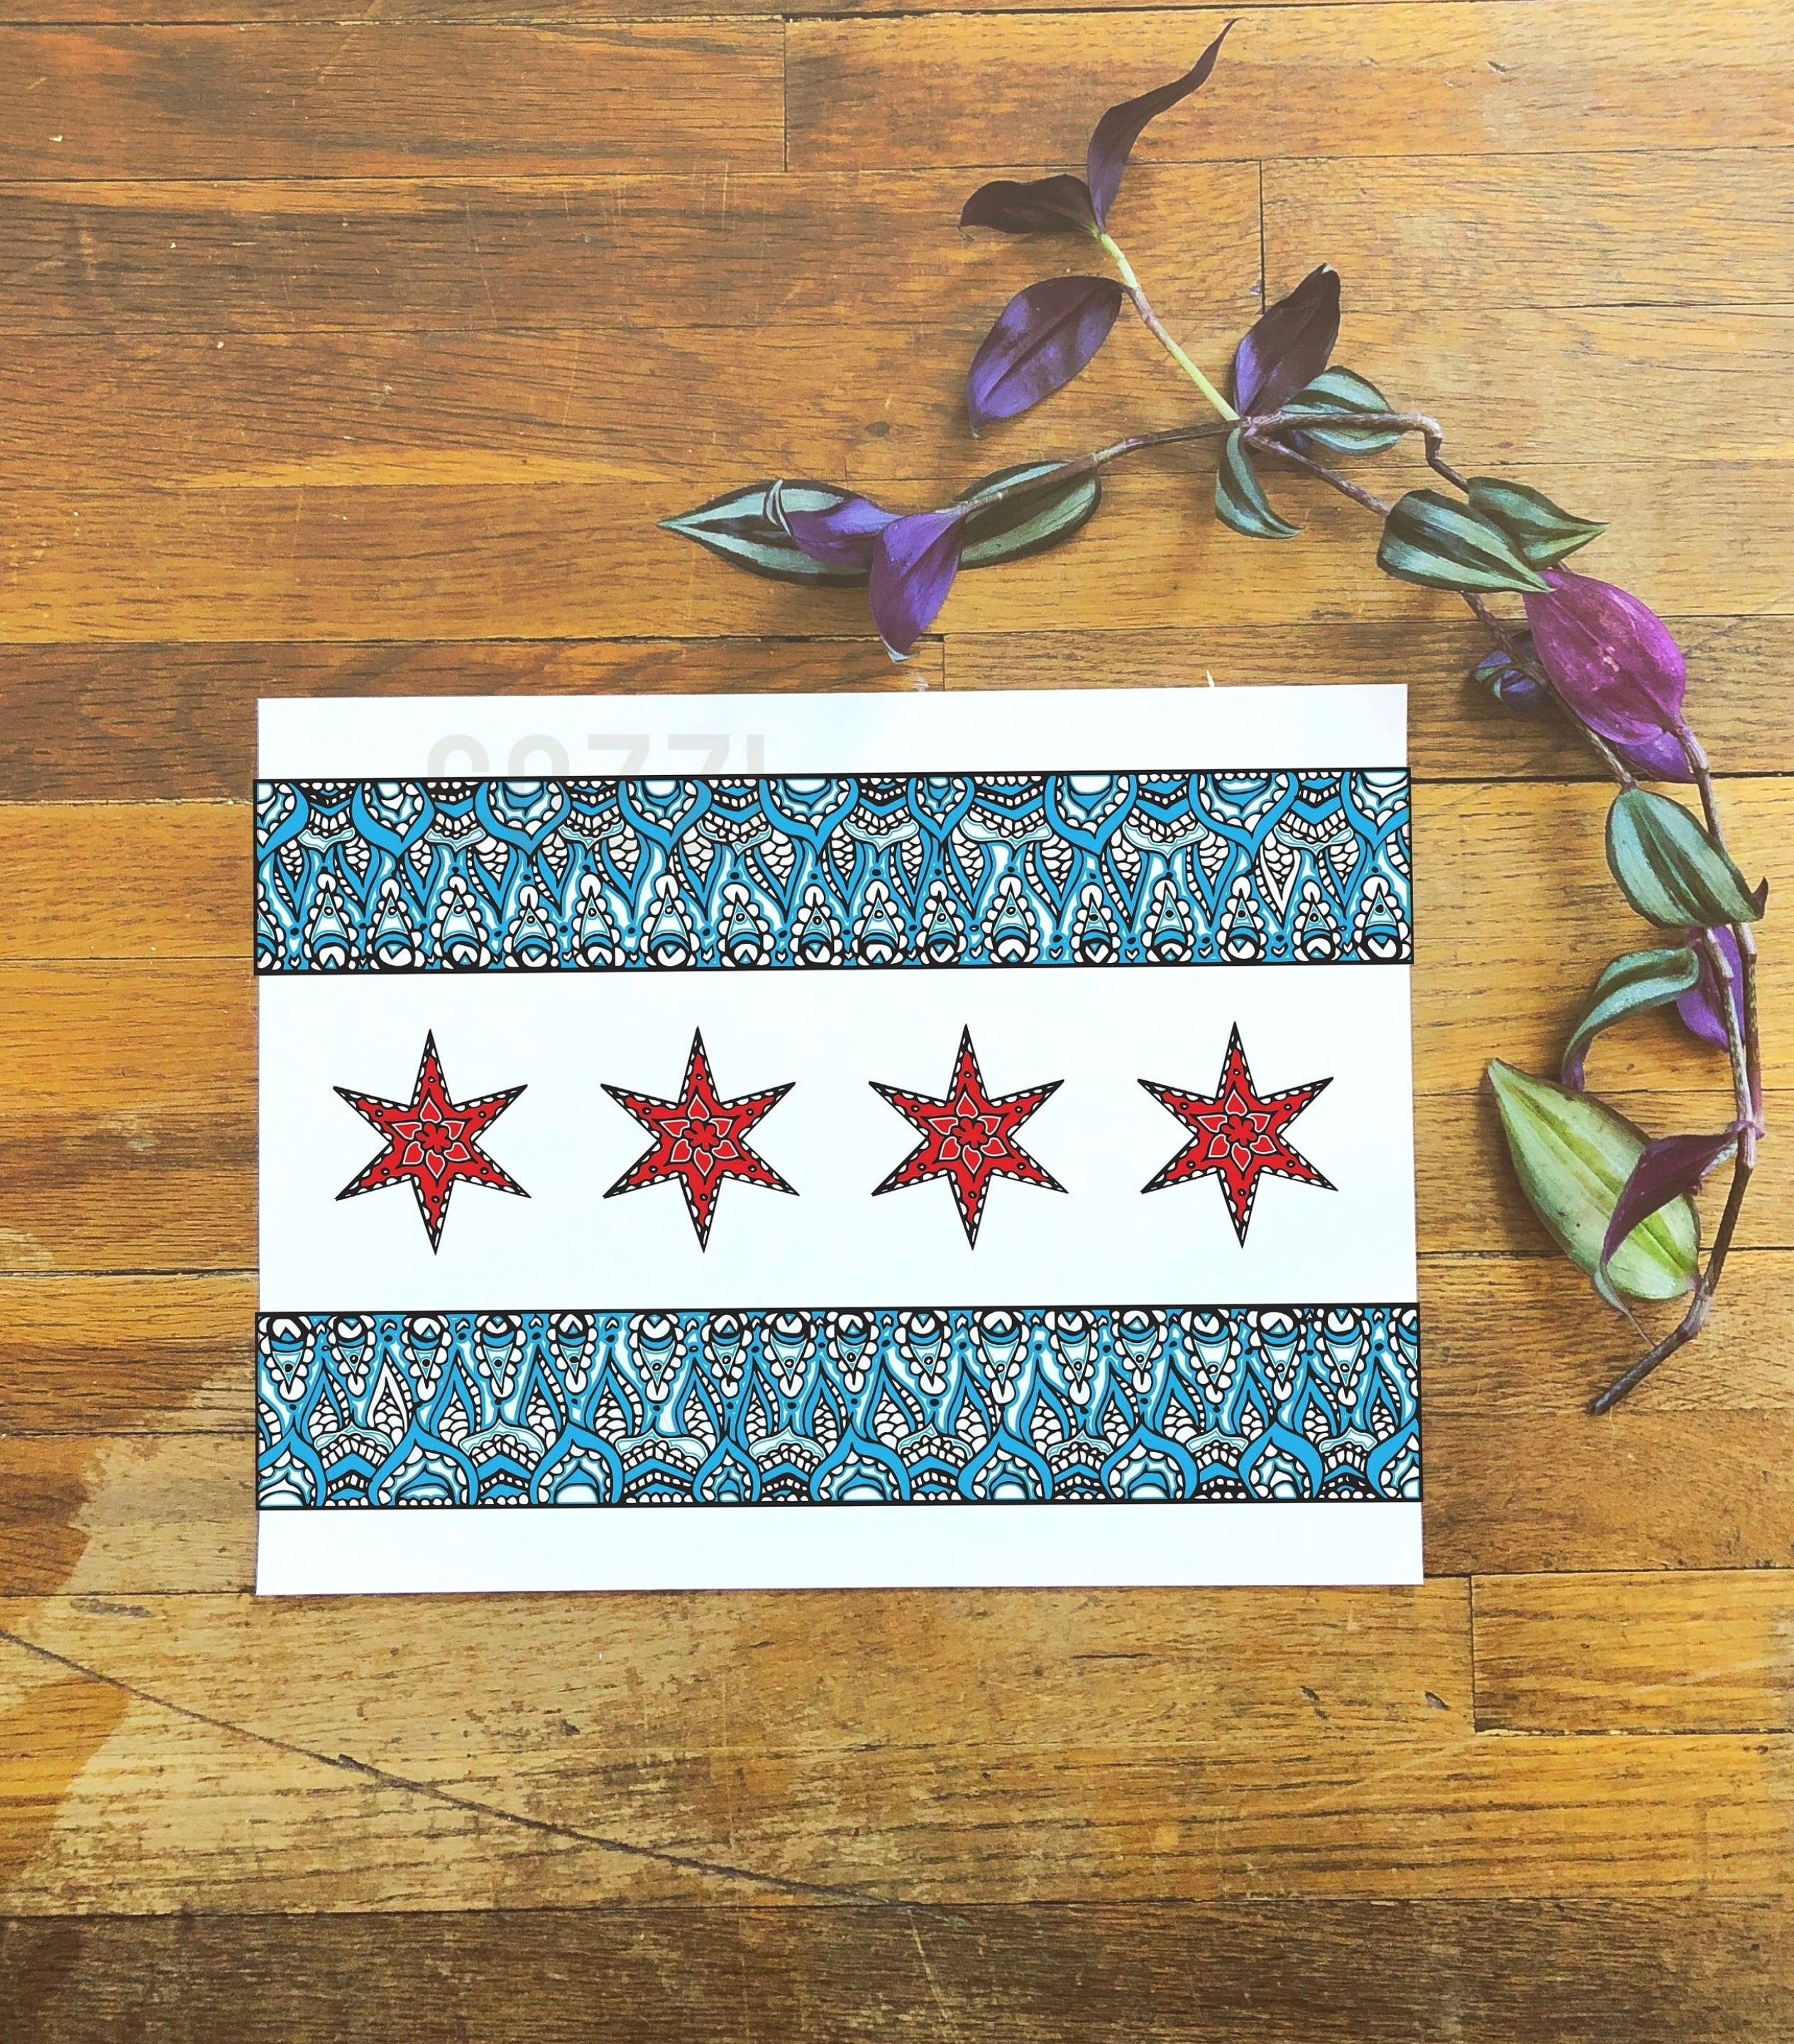 Chicago Flag Art Print 14x11 Inches In 2020 Chicago Flag Art Chicago Art Print Chicago Flag